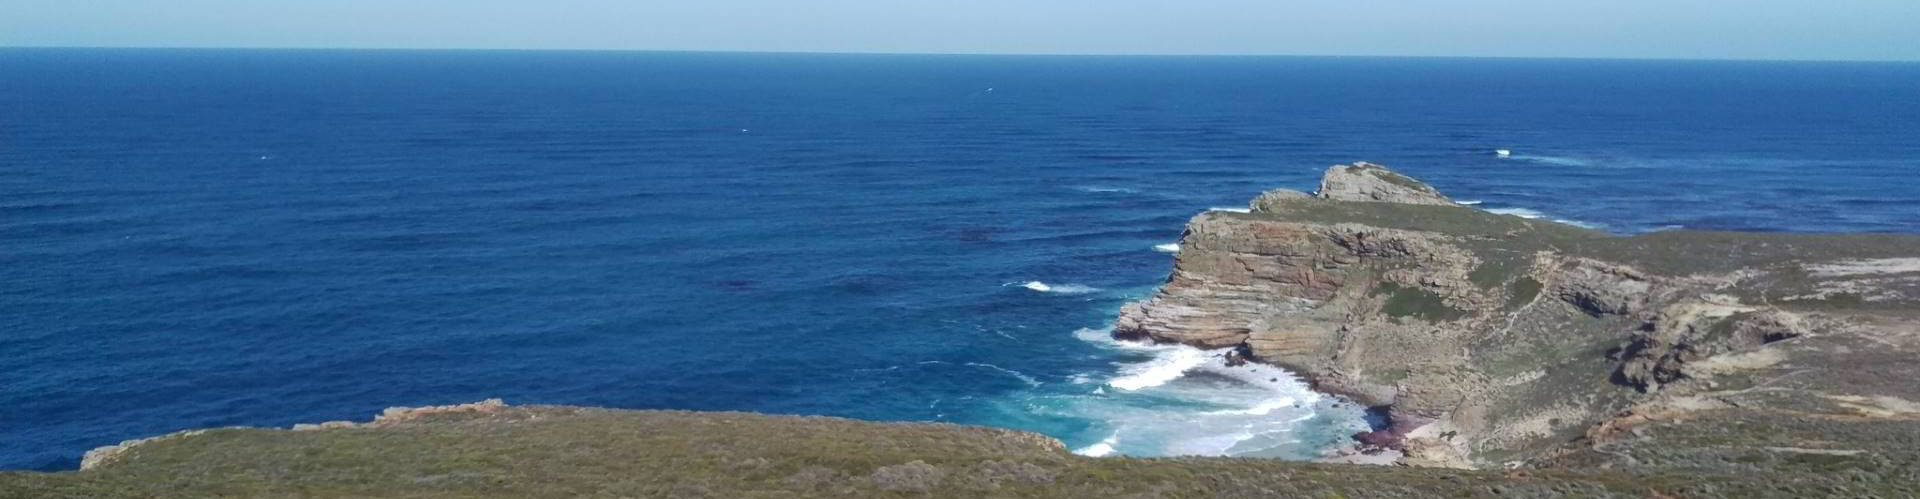 Cape-of-Good-Hope-South-Africa